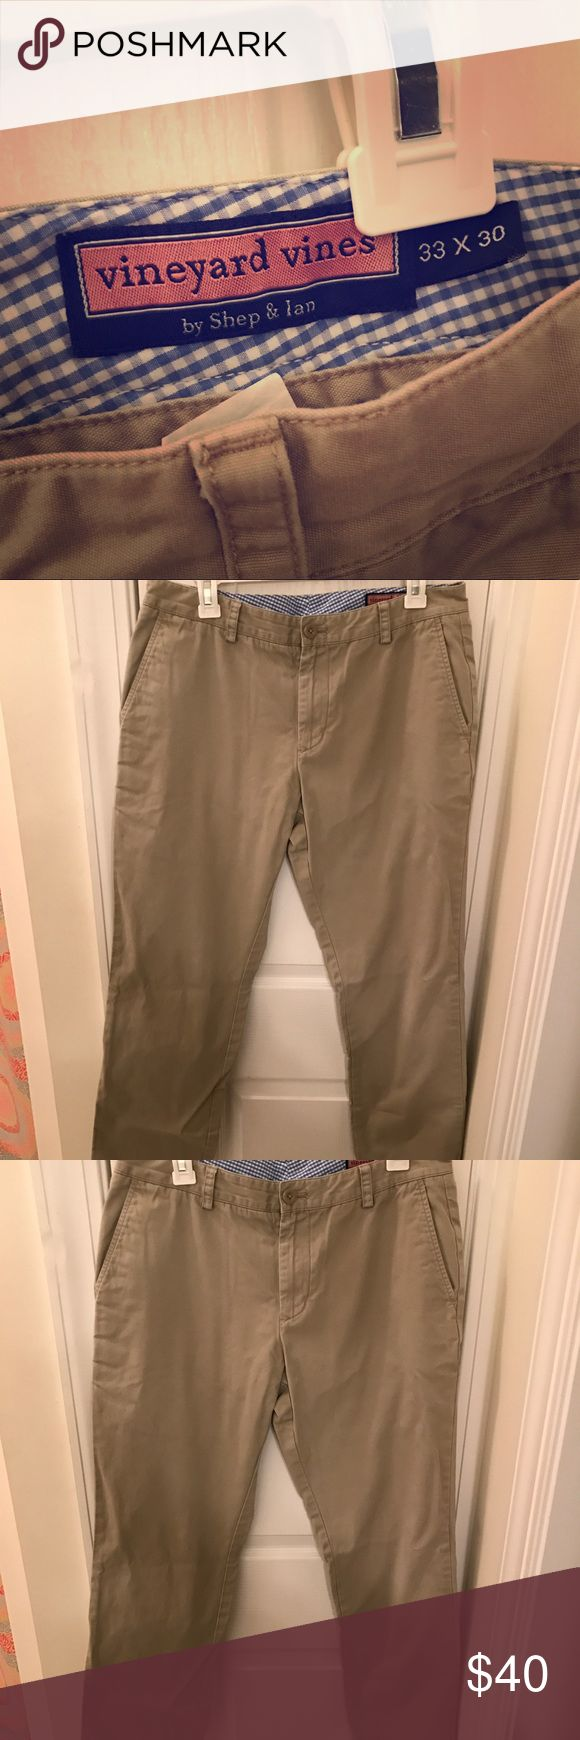 Vineyard vines men's khaki pants worn once 33x30 Men's vineyard vines khakis size 33x30 worn once great condition! Pockets in front and back Vineyard Vines Pants Chinos & Khakis